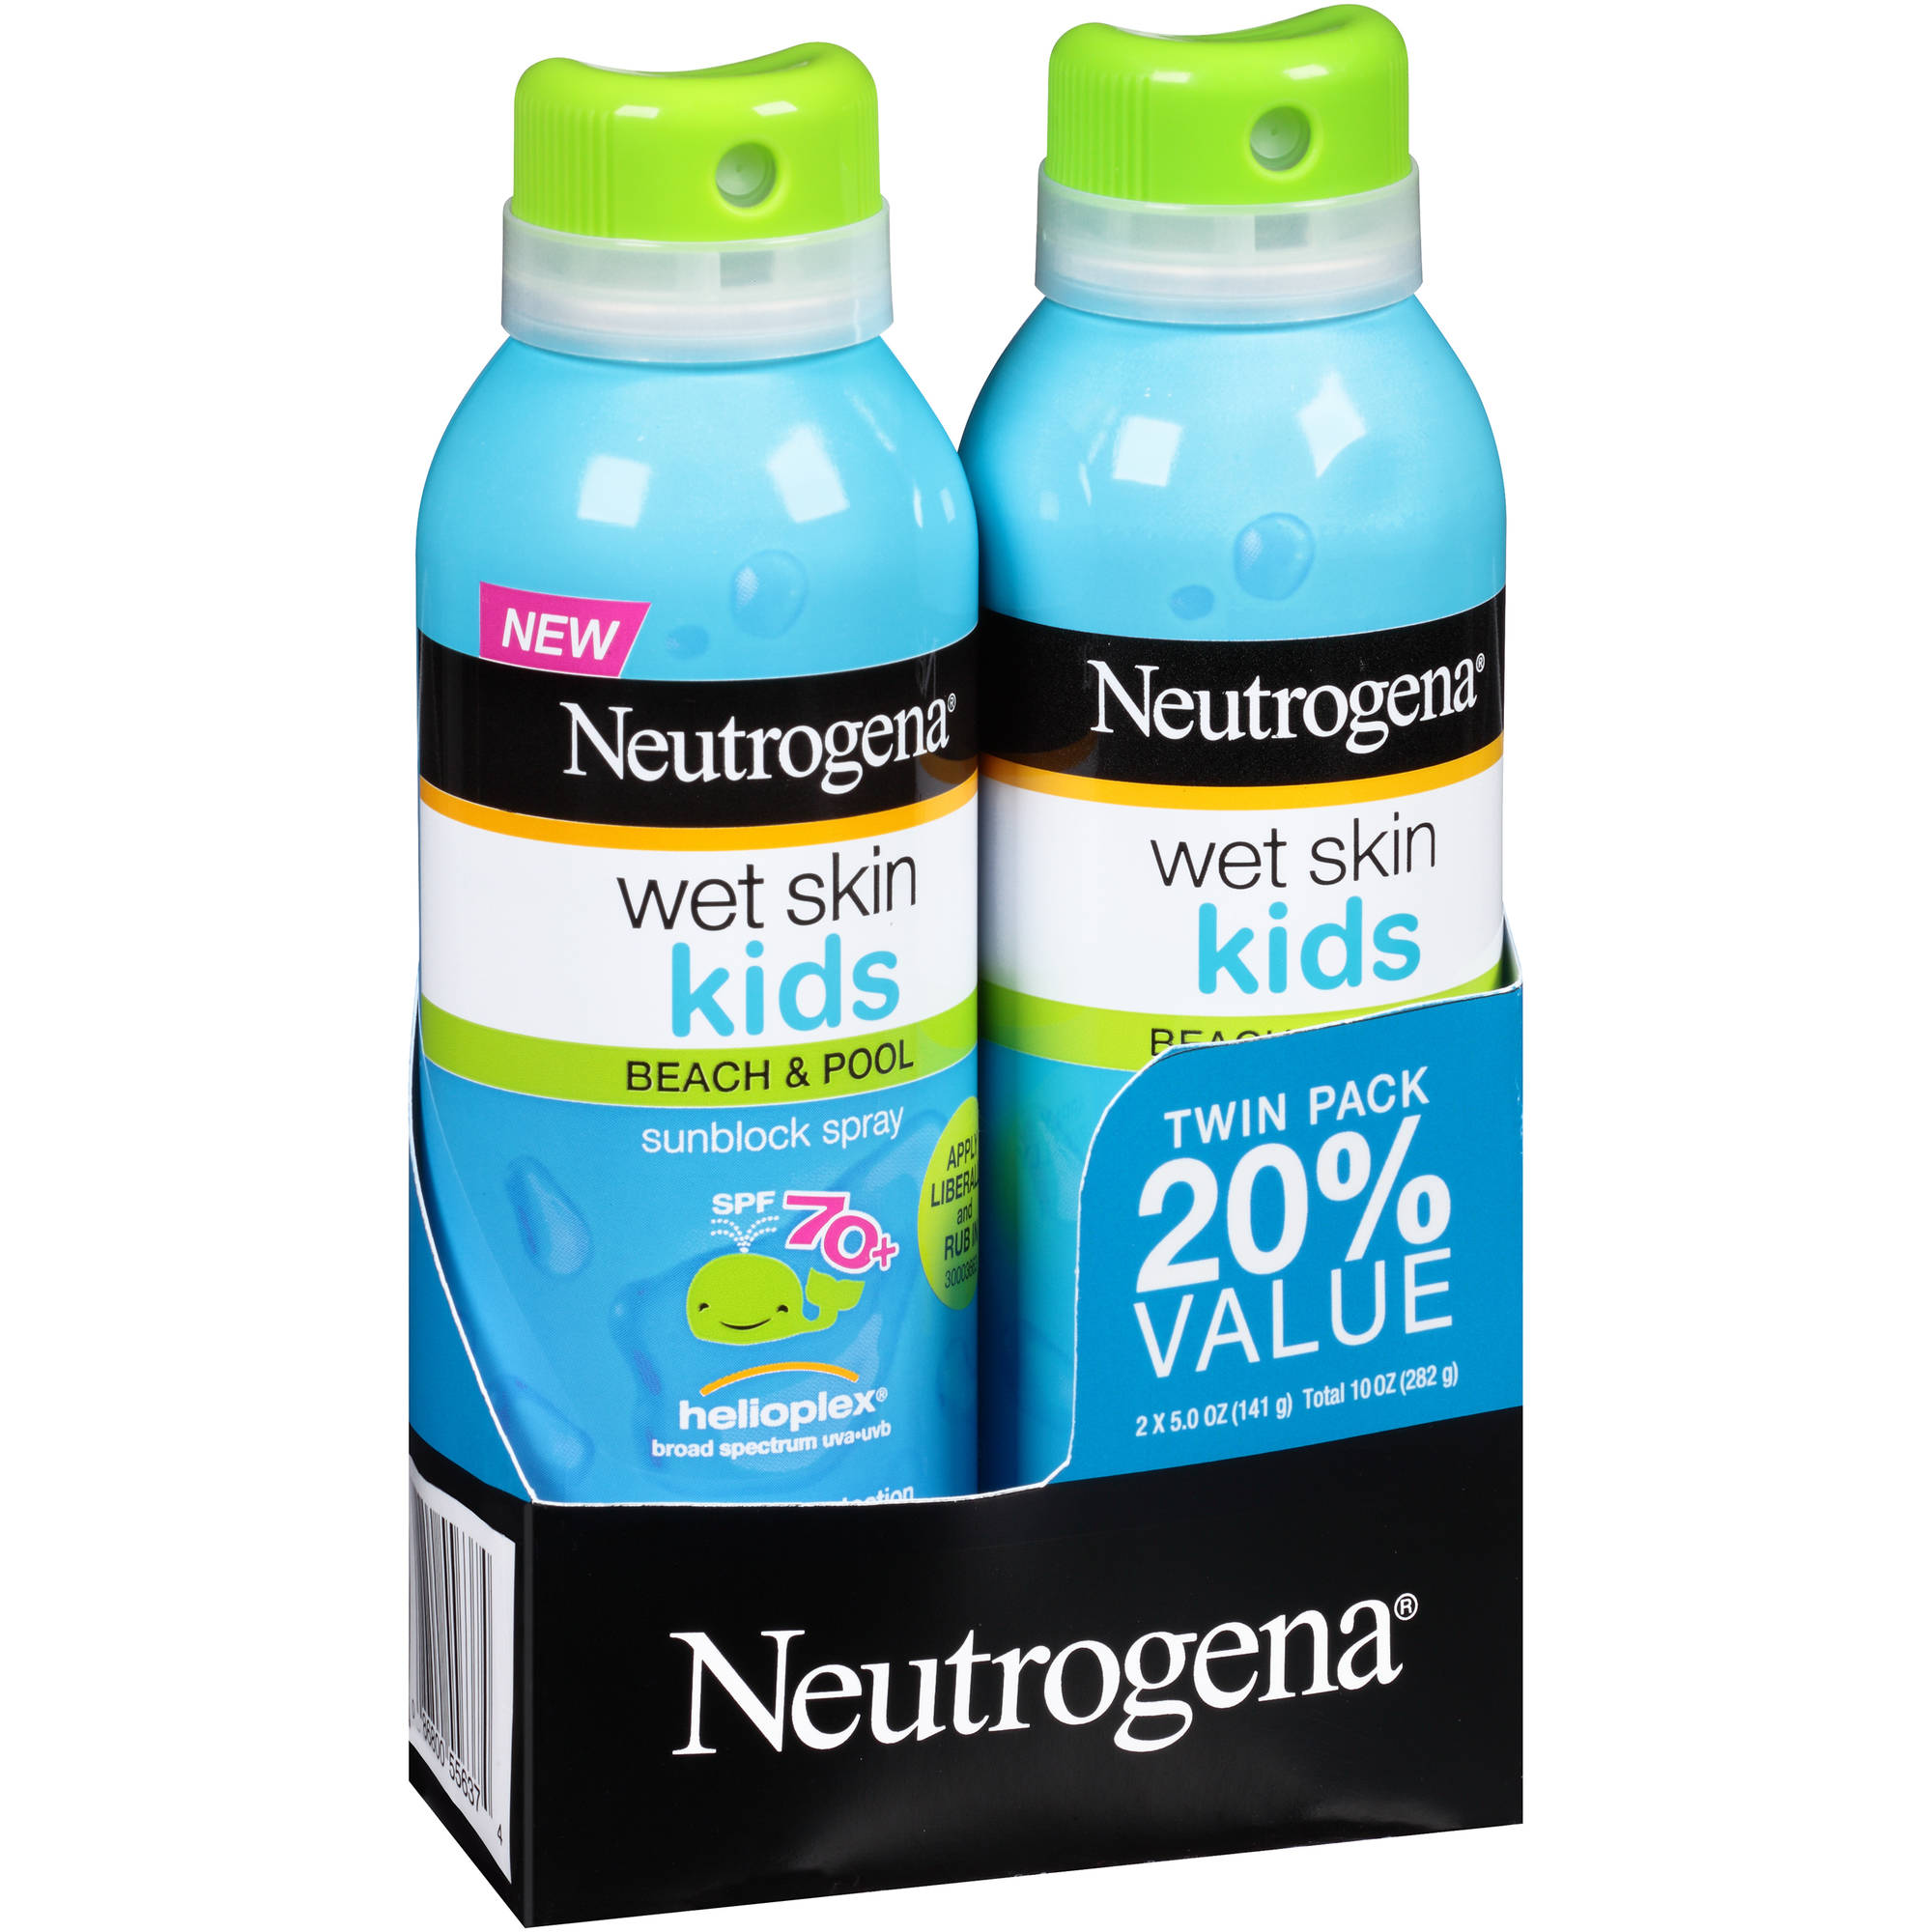 Neutrogena Wet Skin Kids Beach & Pool Sunblock Spray, SPF 70+, 5 oz, (Pack of 2)